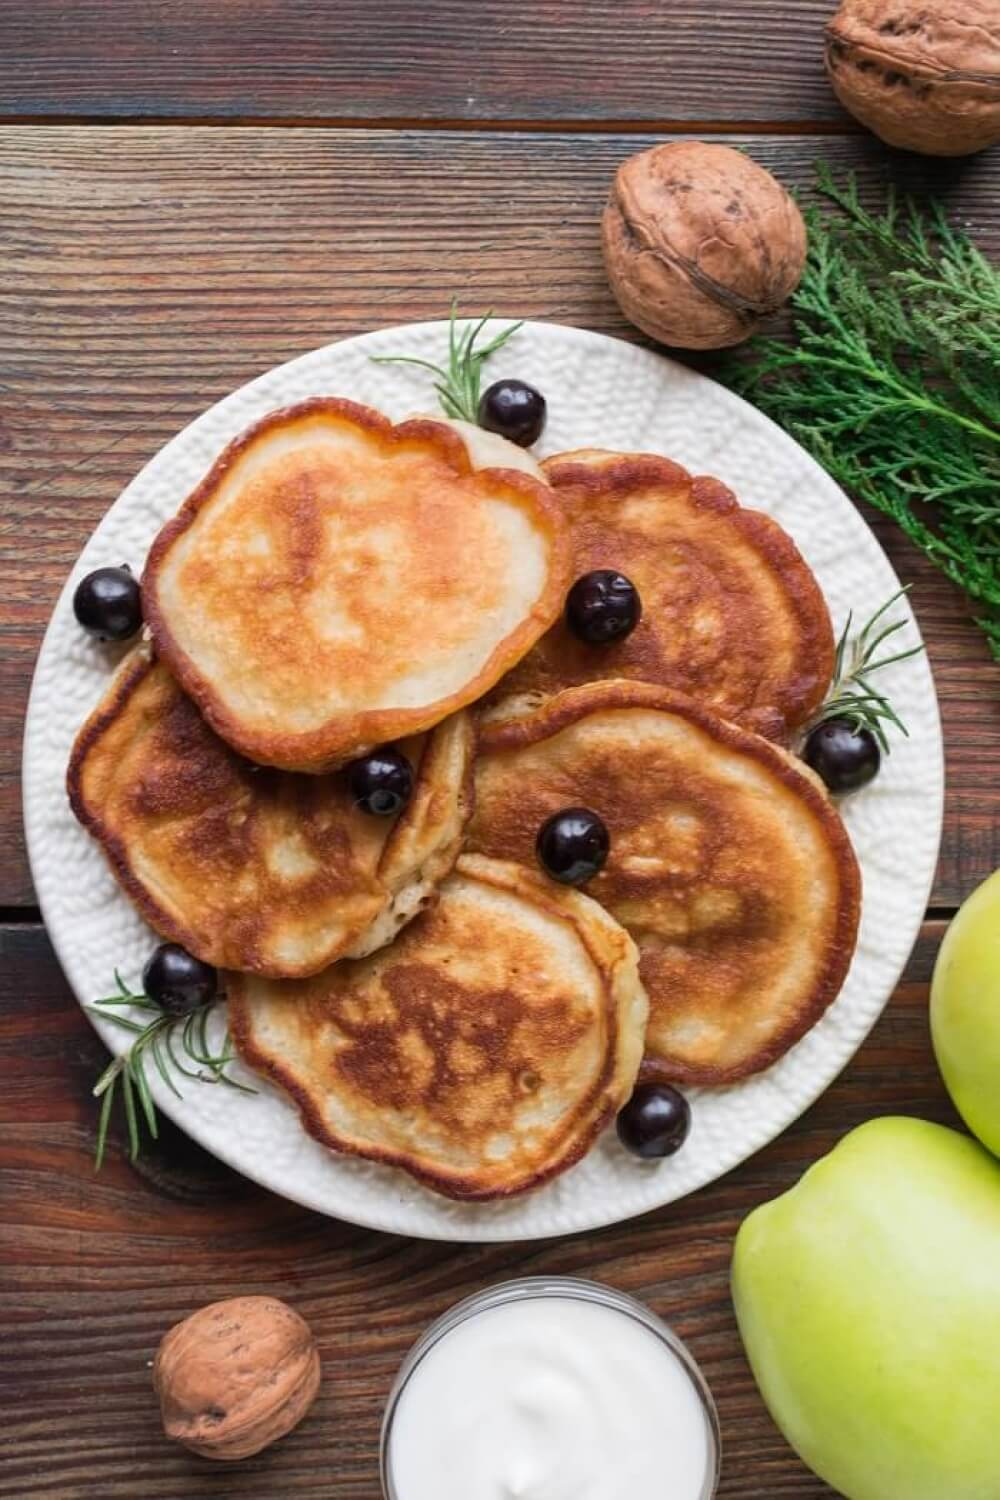 Lush Apple Pancakes (Oladi)